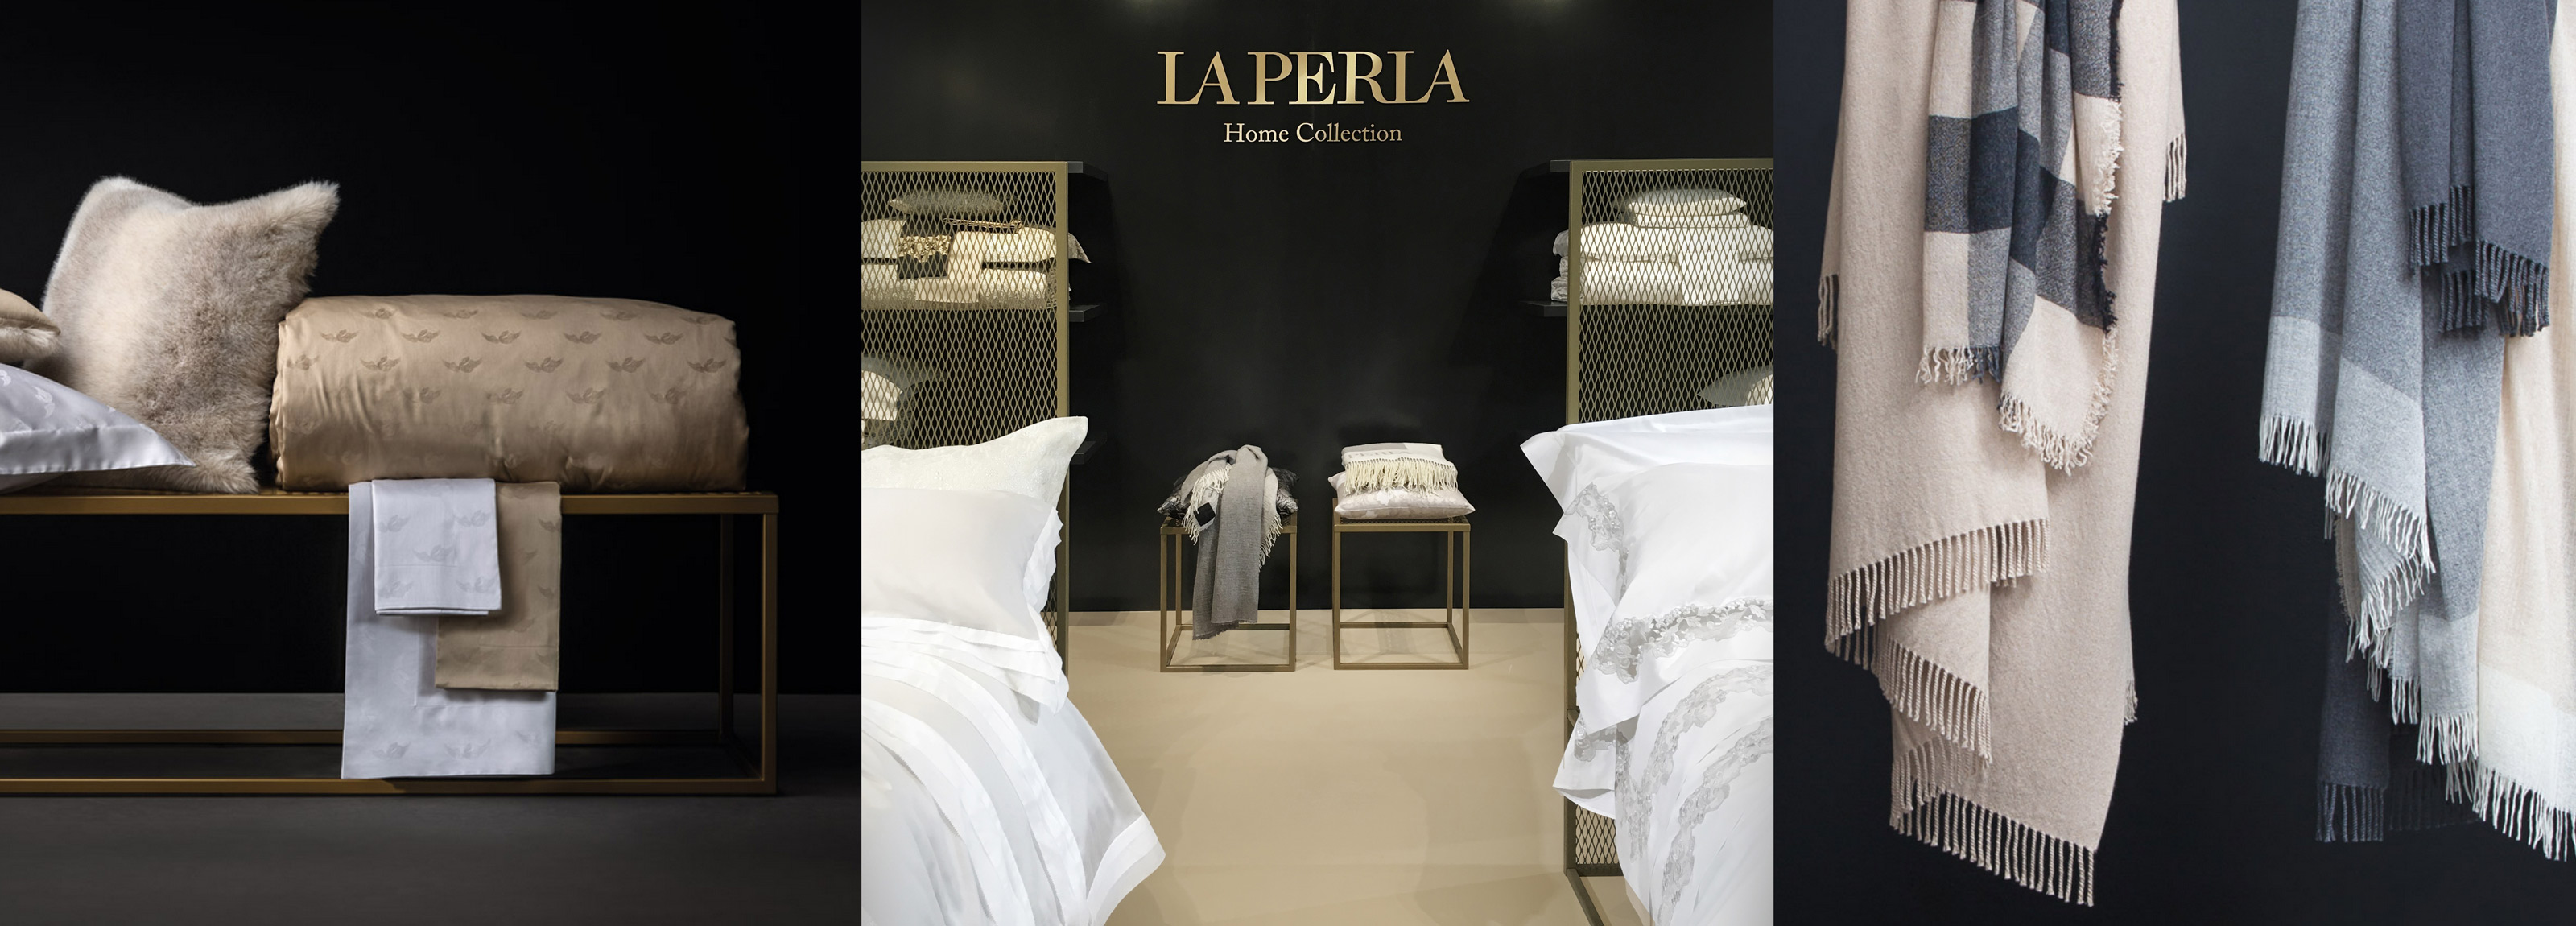 Hangar Design Group designed the interiors and the visual identity of La Perla